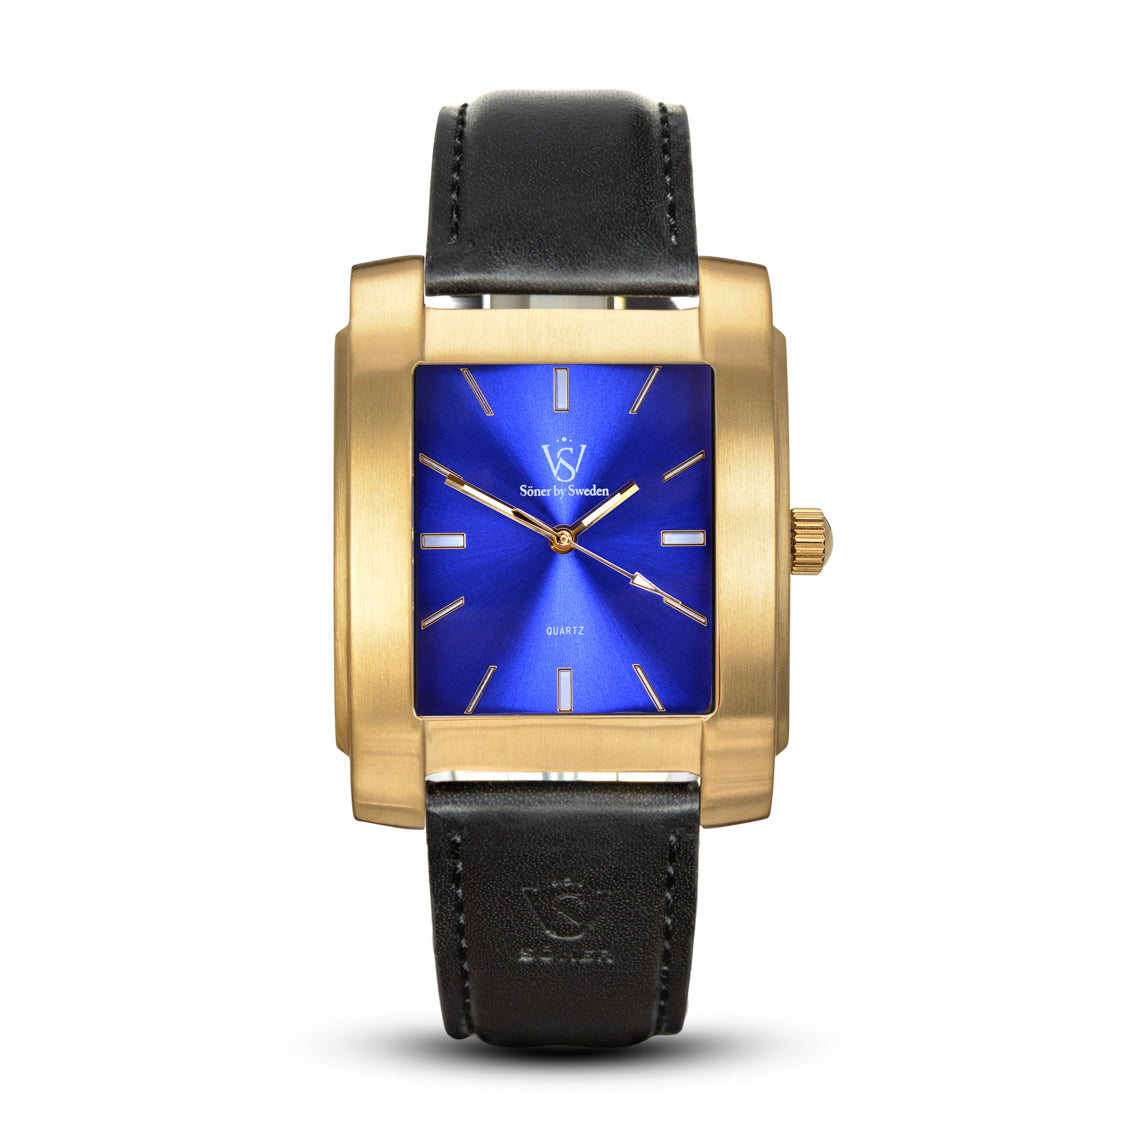 SQUARE MEN'S WATCH - LEGACY C Brushed gold - Blue dial